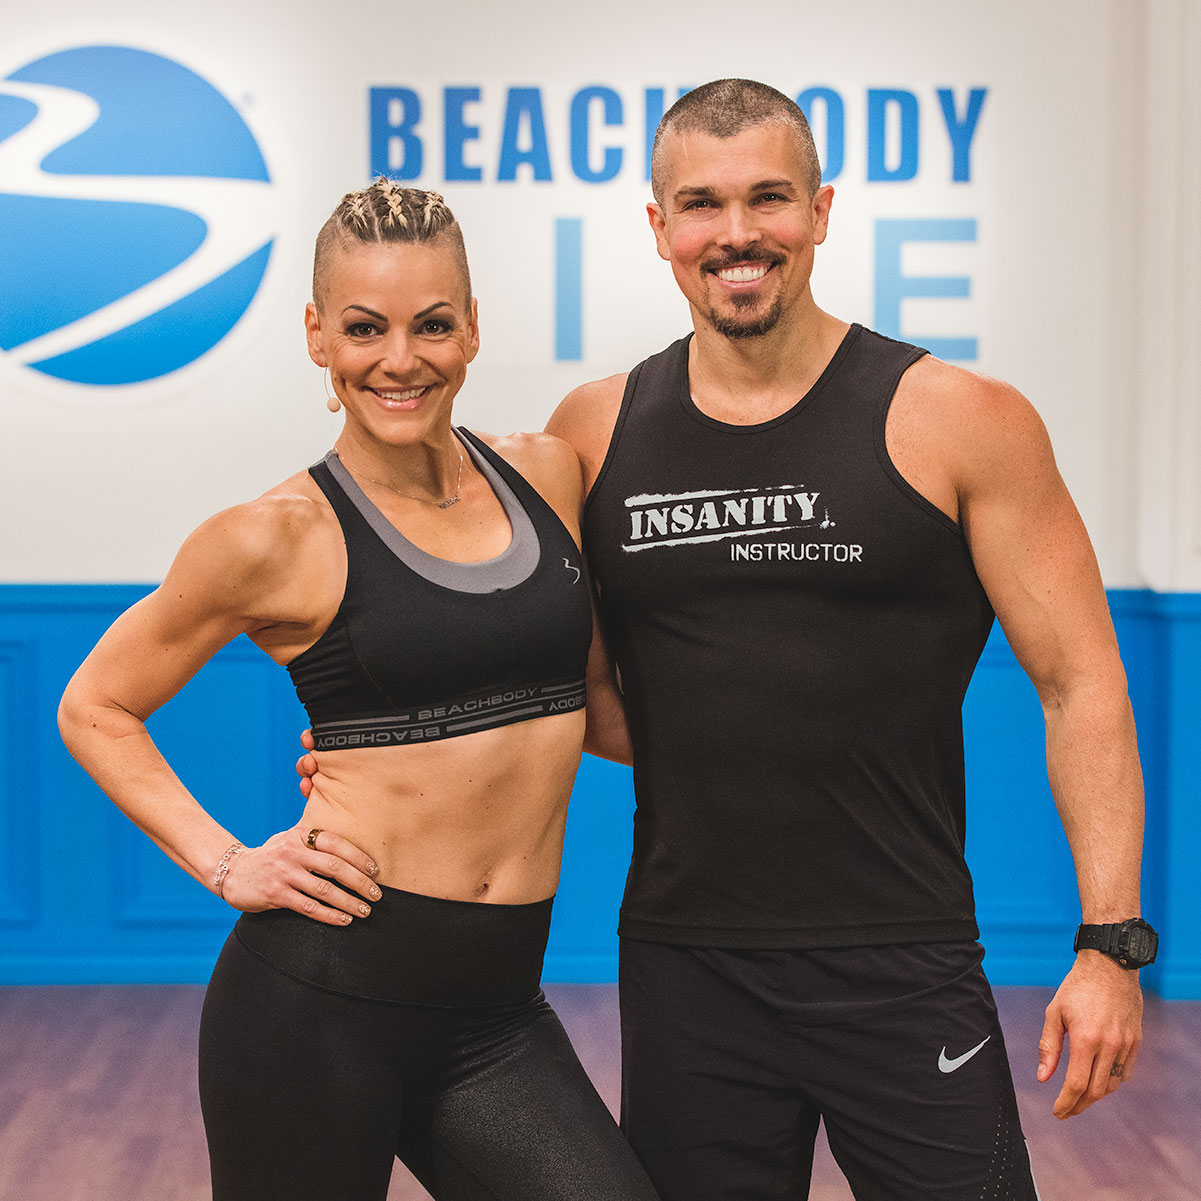 Danielle Natoni wearing a black Beachbody LIVE sports bra and tights, smiling with her hand on her hip, and standing next to her smiling husband, Darren Natoni, wearing a black INSANITY instructor tank top